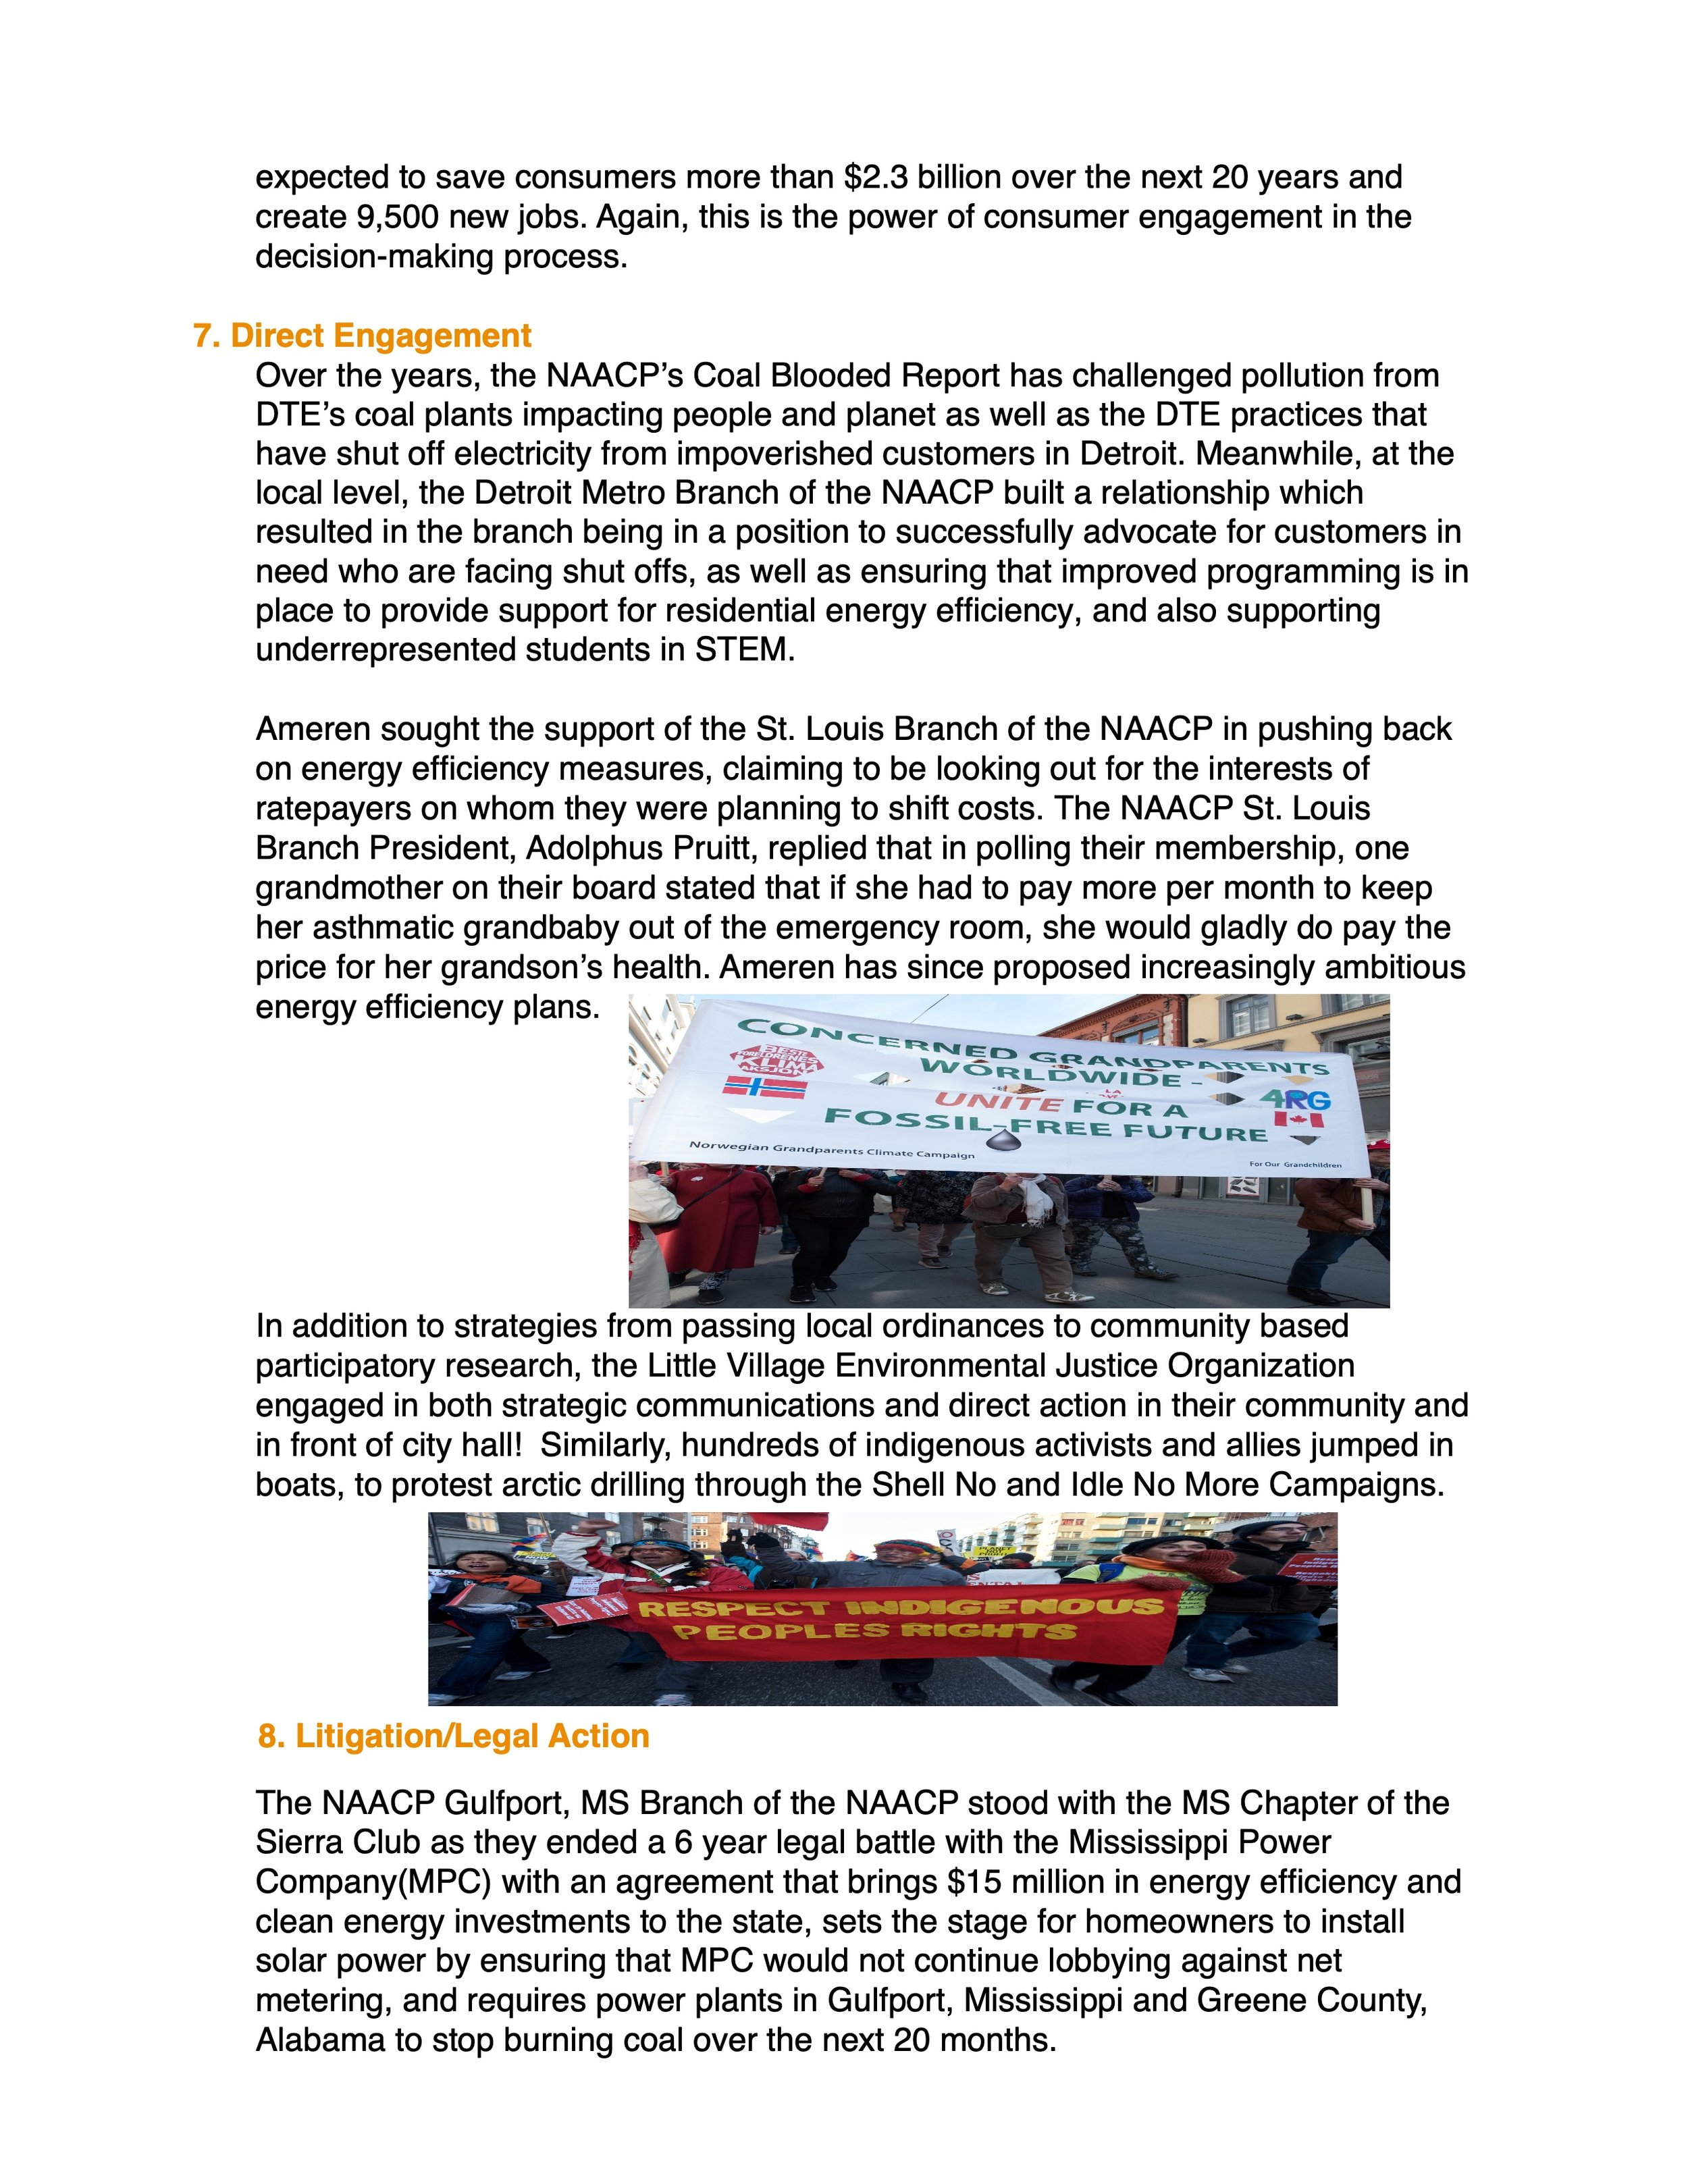 Fossil-Fueled-Foolery-An-Illustrated-Primer-on-the-Top-10-Manipulation-Tactics-of-the-Fossil-Fuel-Industry 23.jpeg